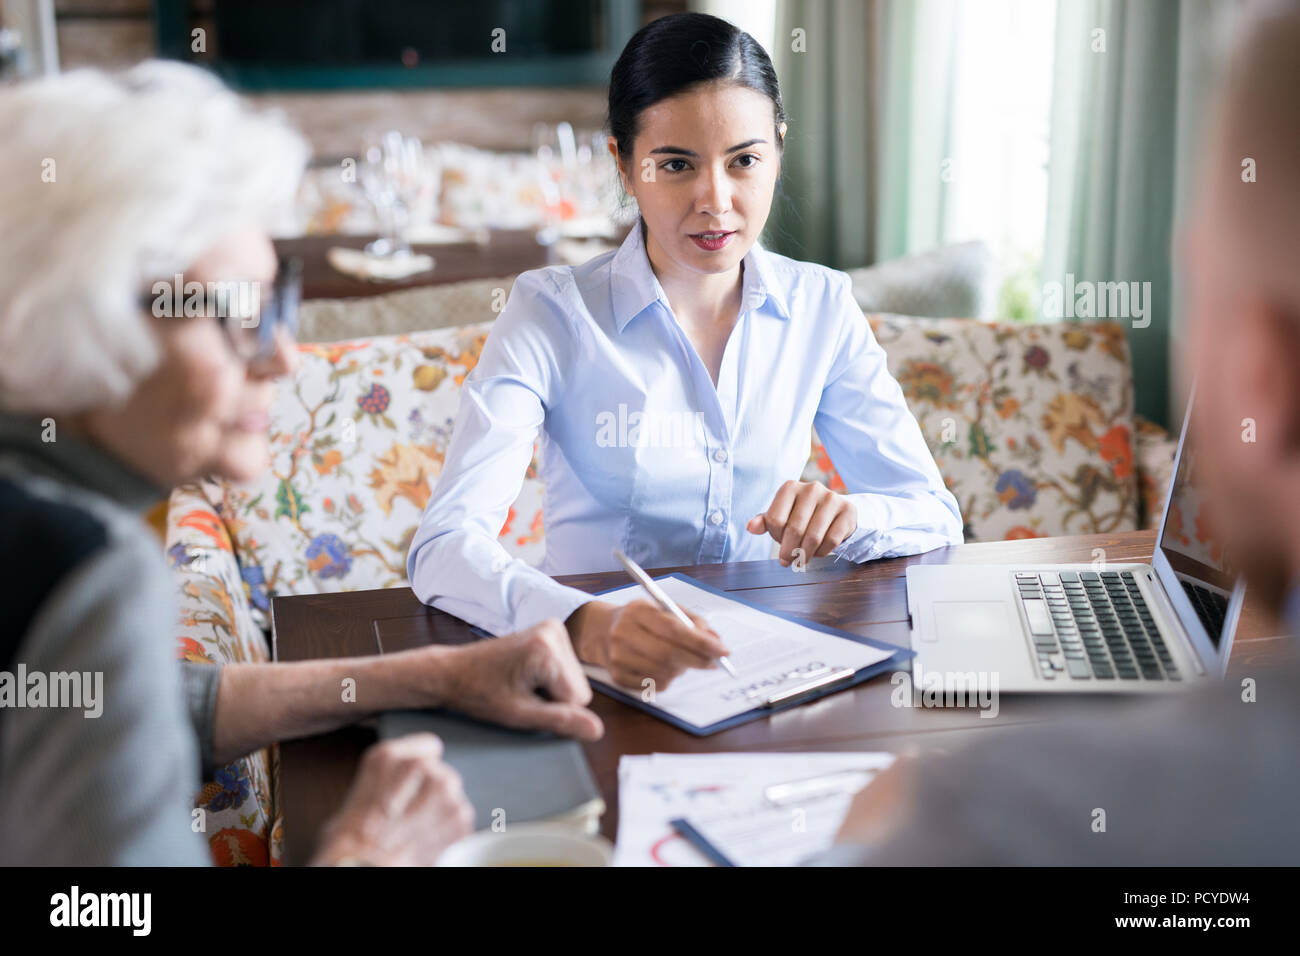 Businesswoman at meeting - Stock Image